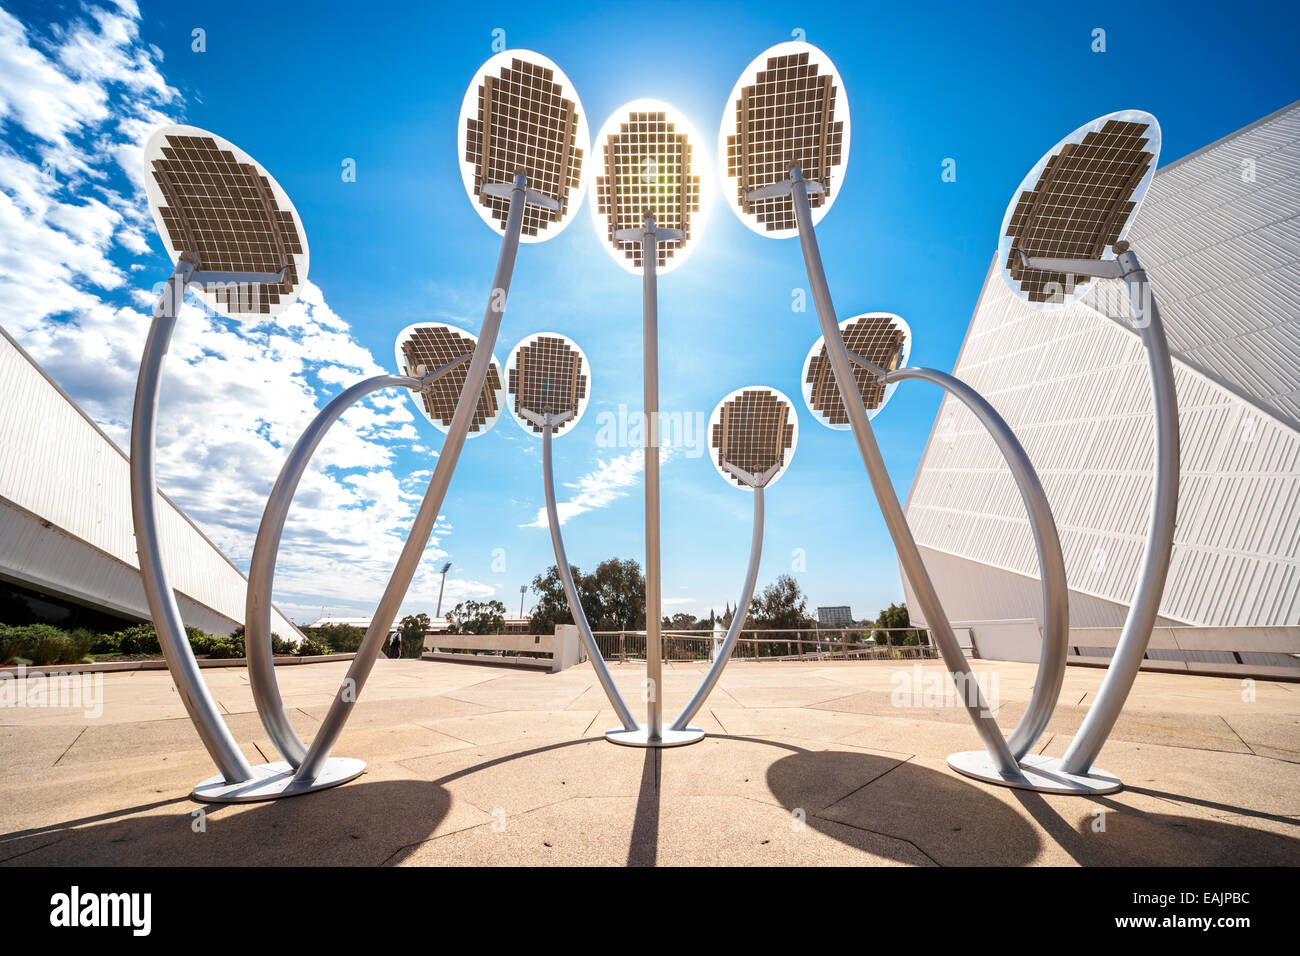 Solar powered led lights as street lighting aka The Solar Mallee Trees sculpture. Adelaide South Australia Stock Photo